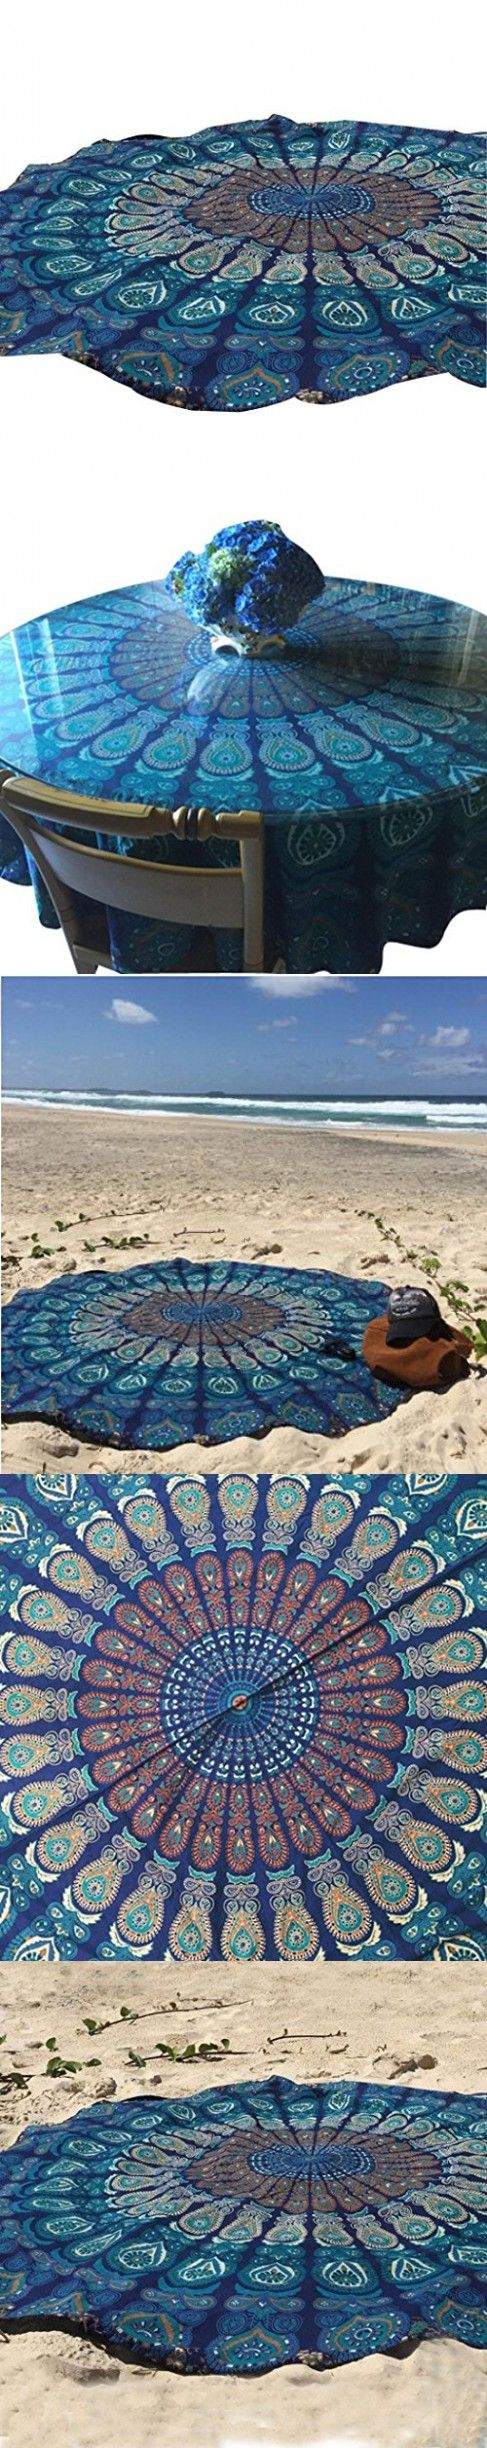 XUANOU Ethnic Style Round Beach Mat Peacock Feather Pattern Towel Tablecloth Yoga Mat